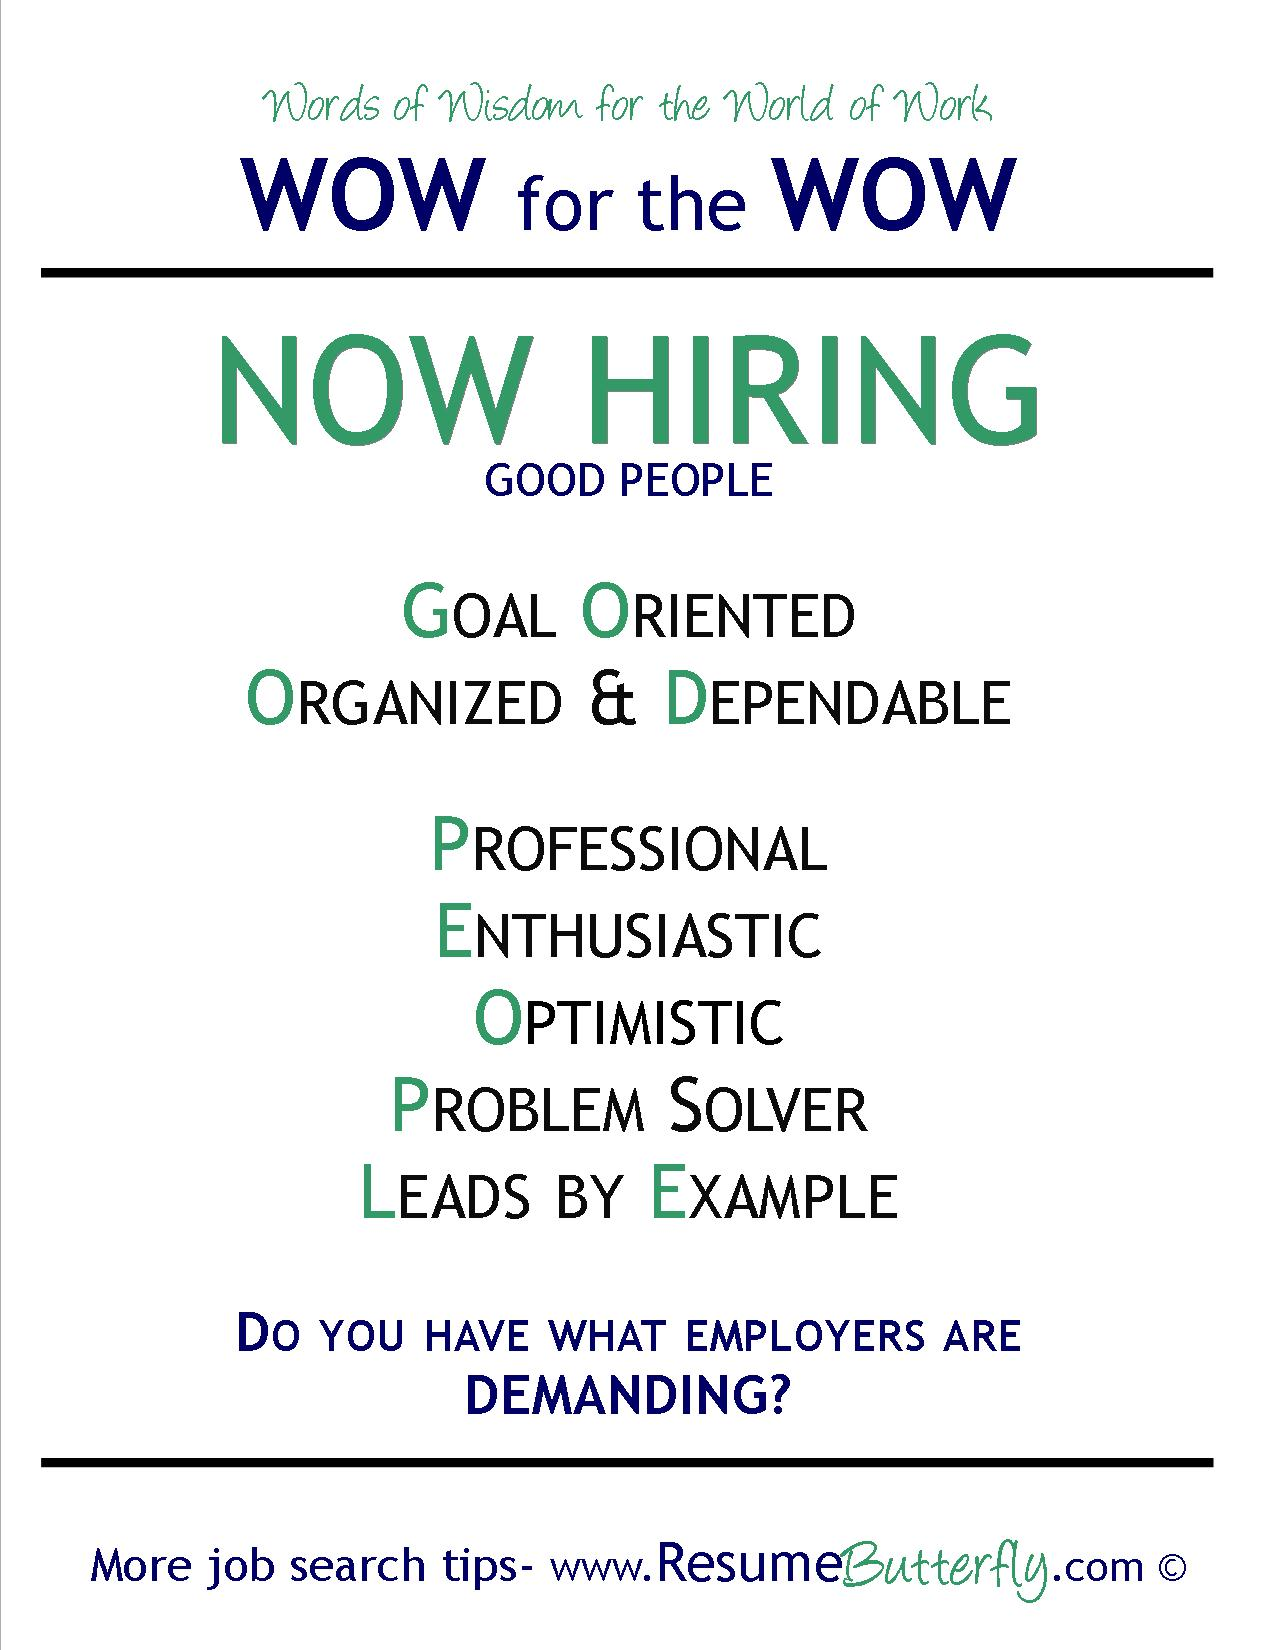 Now Hiring - Good People - DO YOU HAVE WHAT EMPLOYERS ARE ...